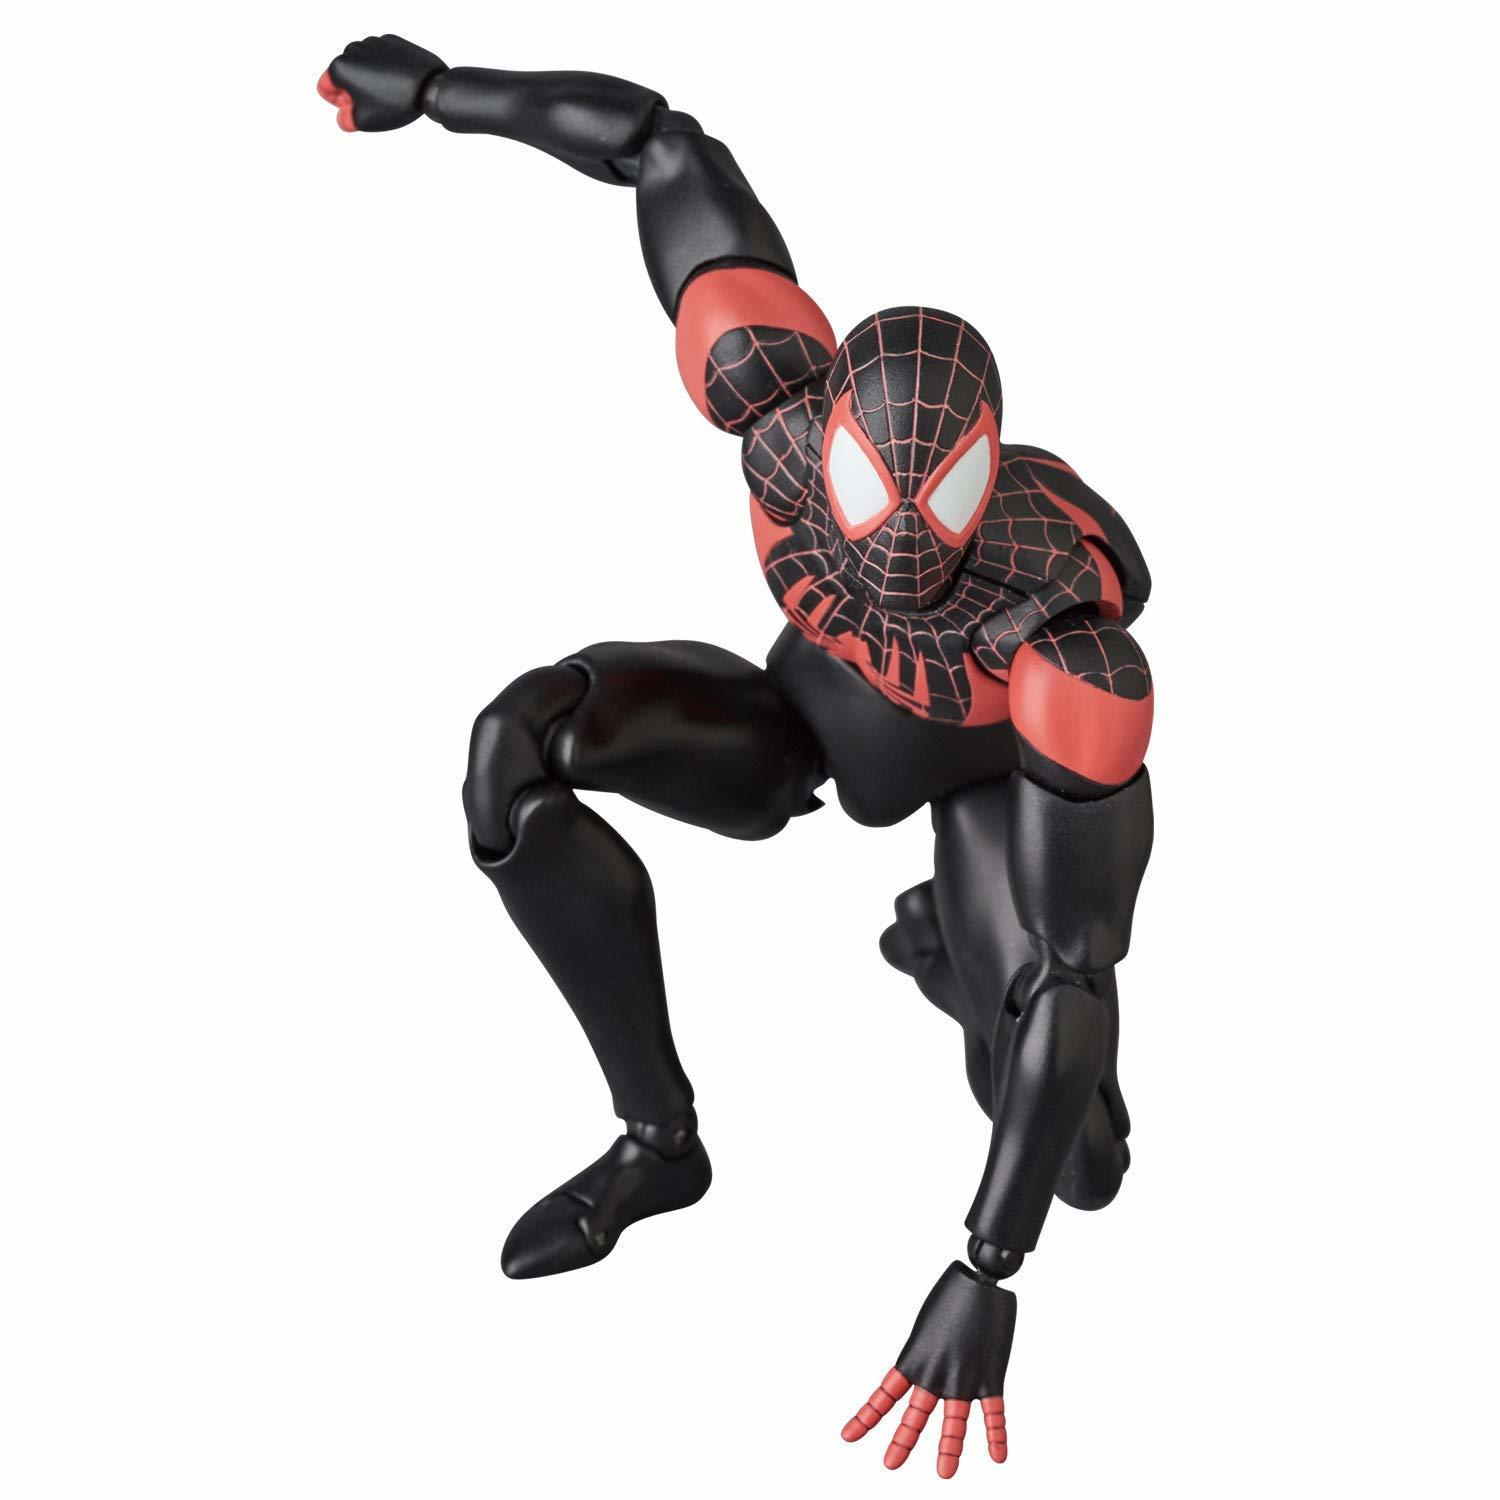 MAFEX Spider-Man (Miles Morales) - Action Figure image